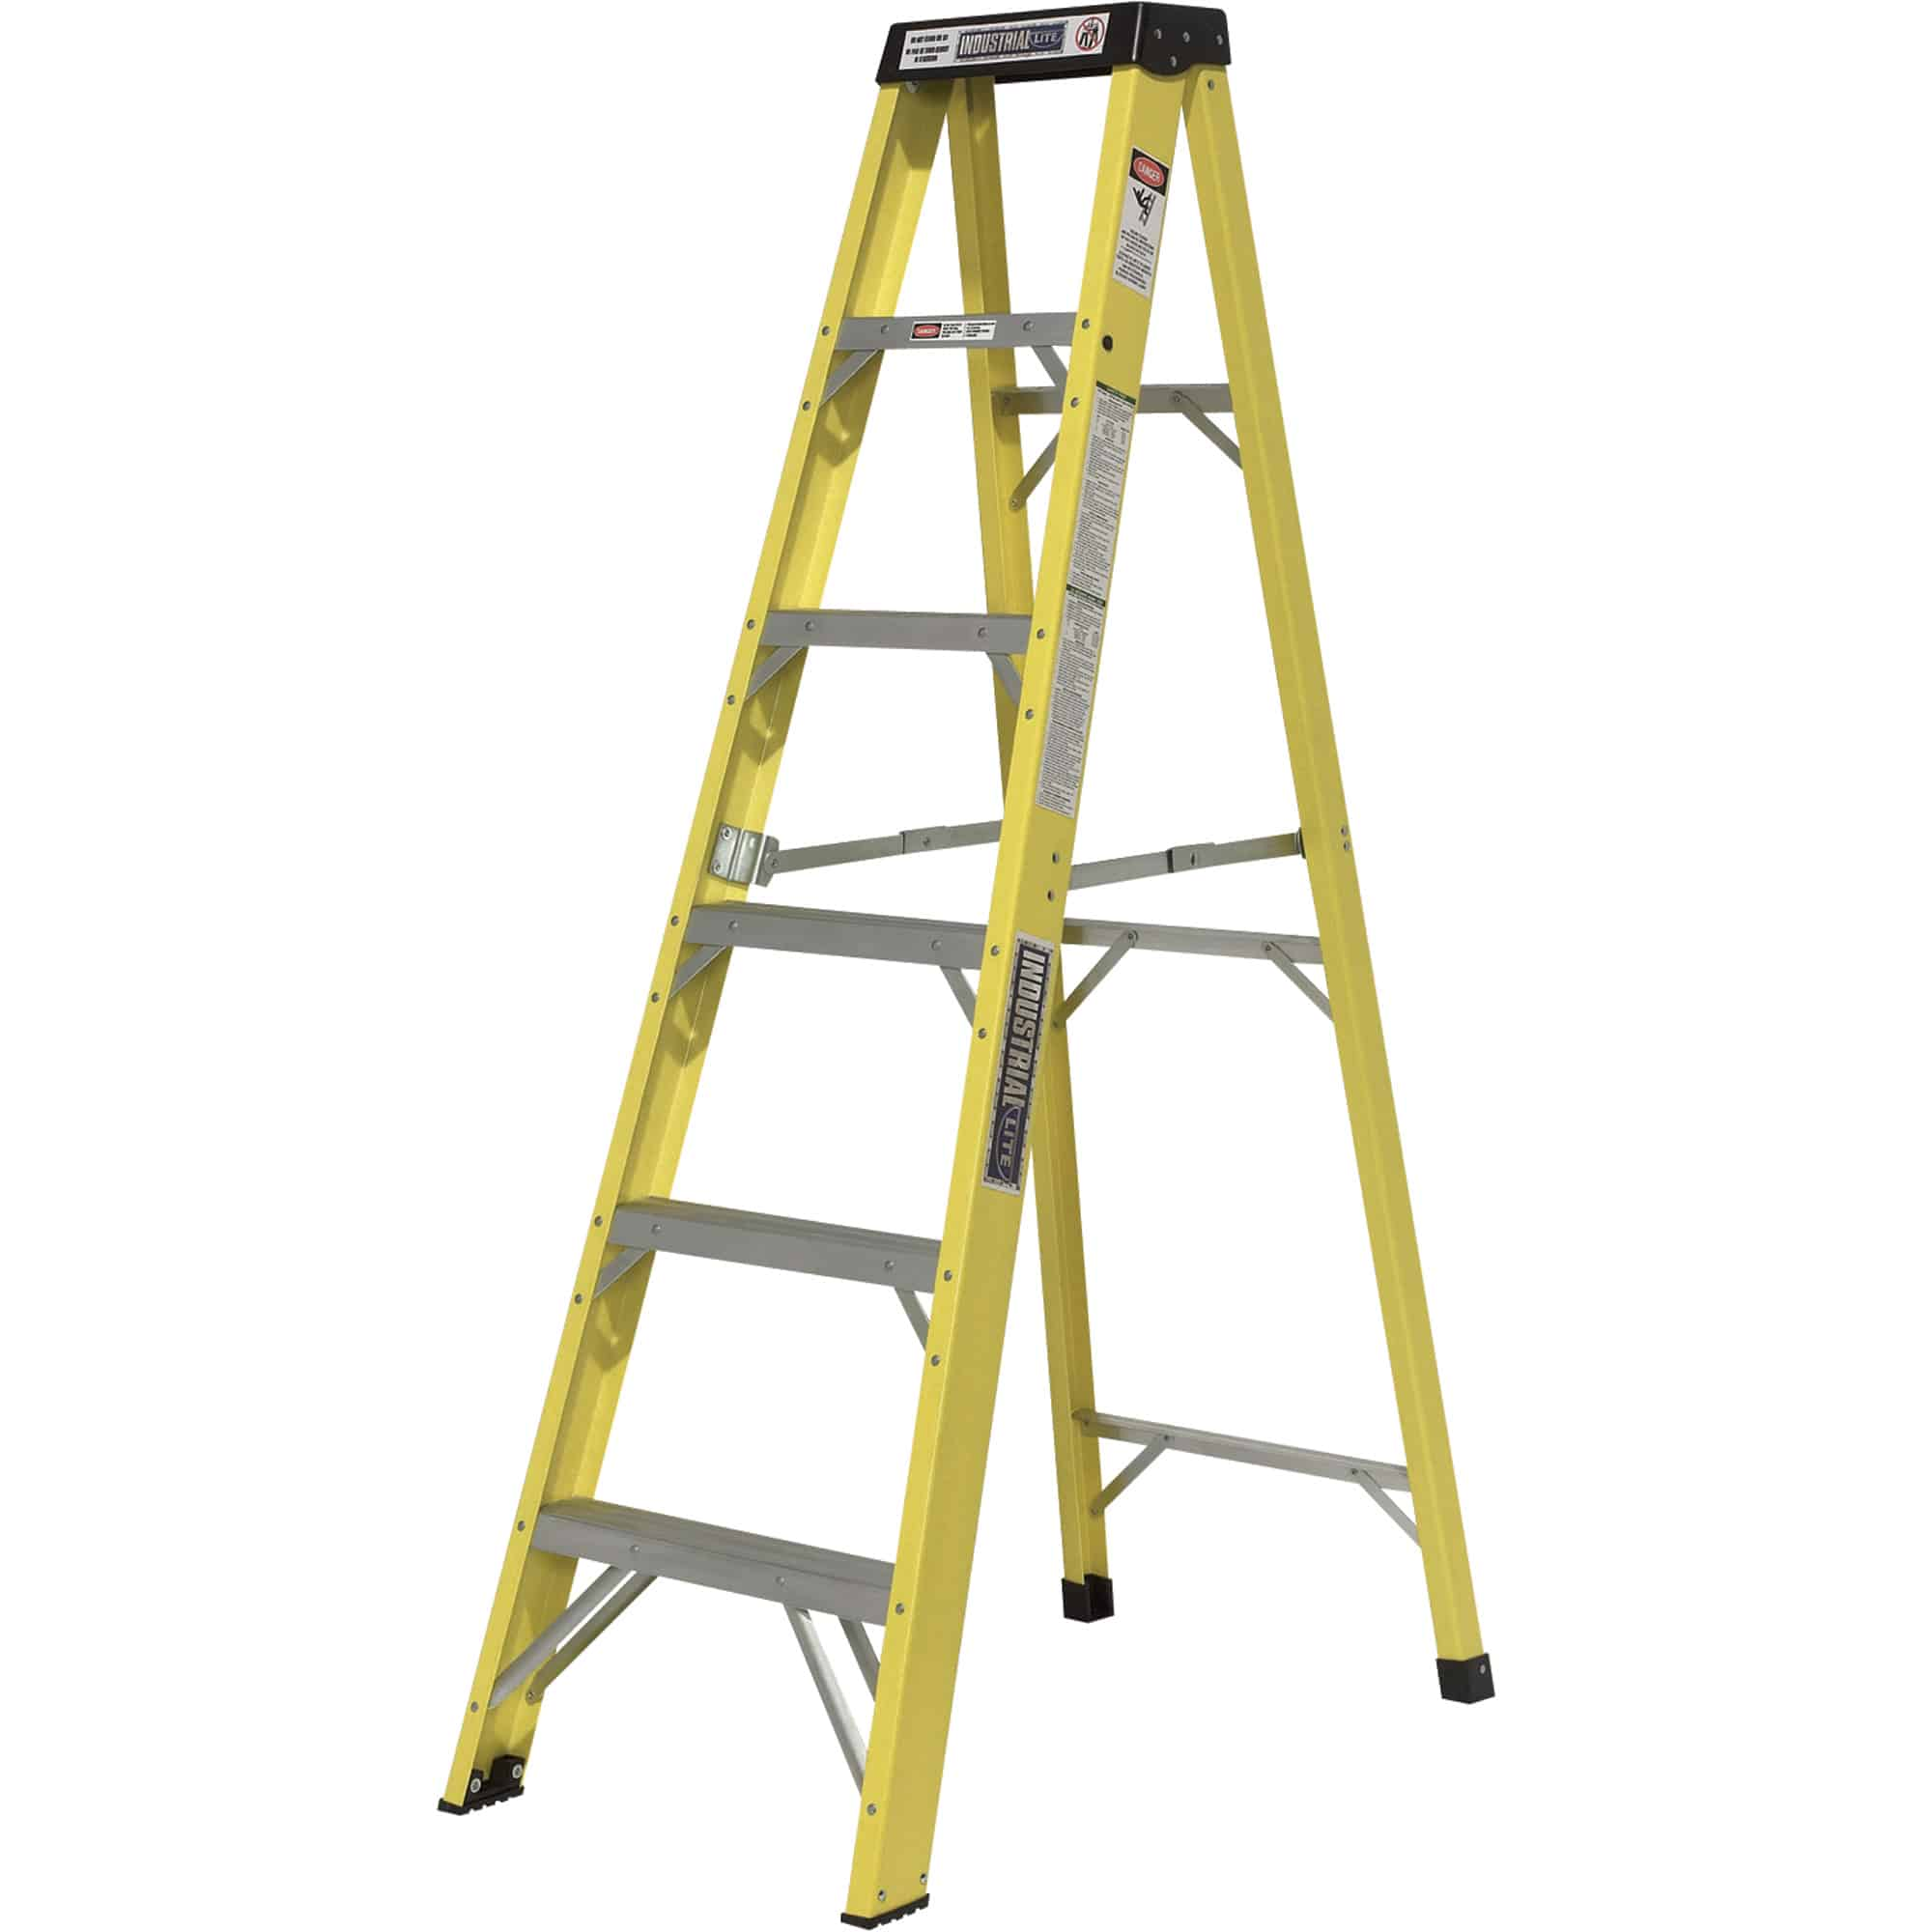 Environmental Consulting Services Ladder Safety Farmereg Com